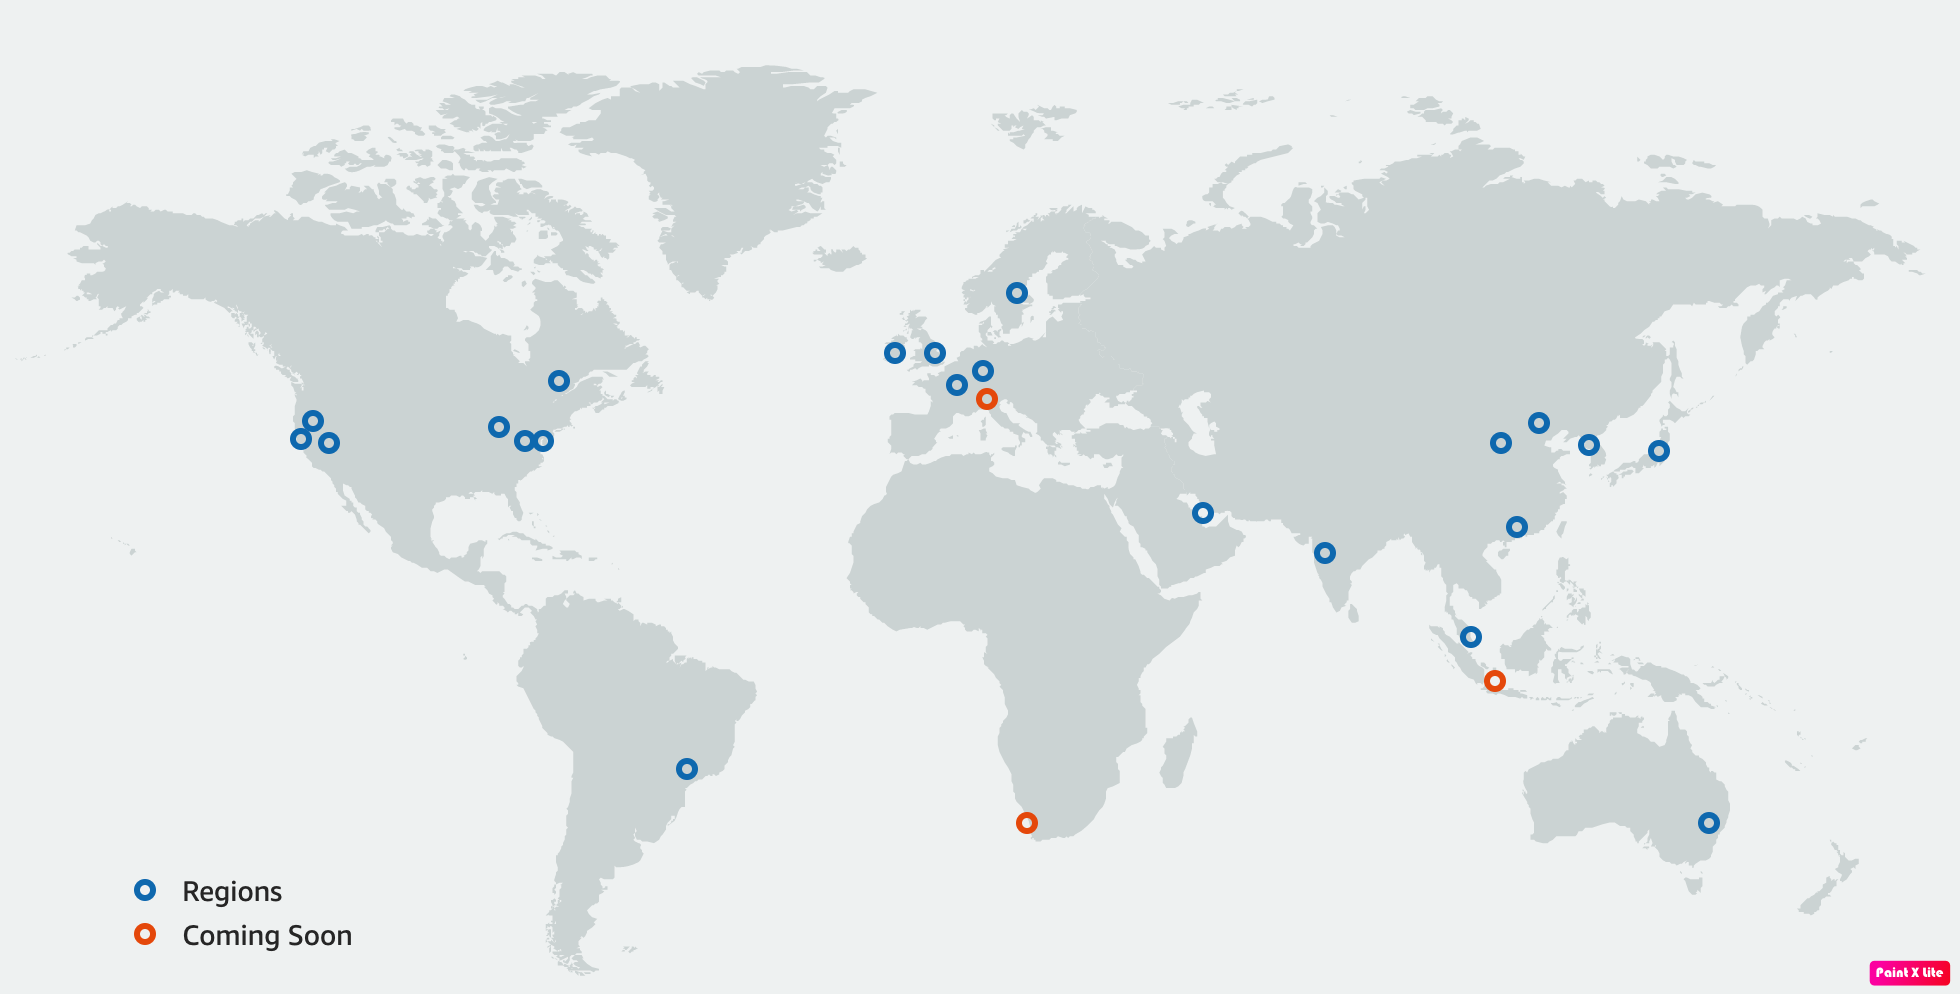 most recent locations list of AWS Regions shown on the World map